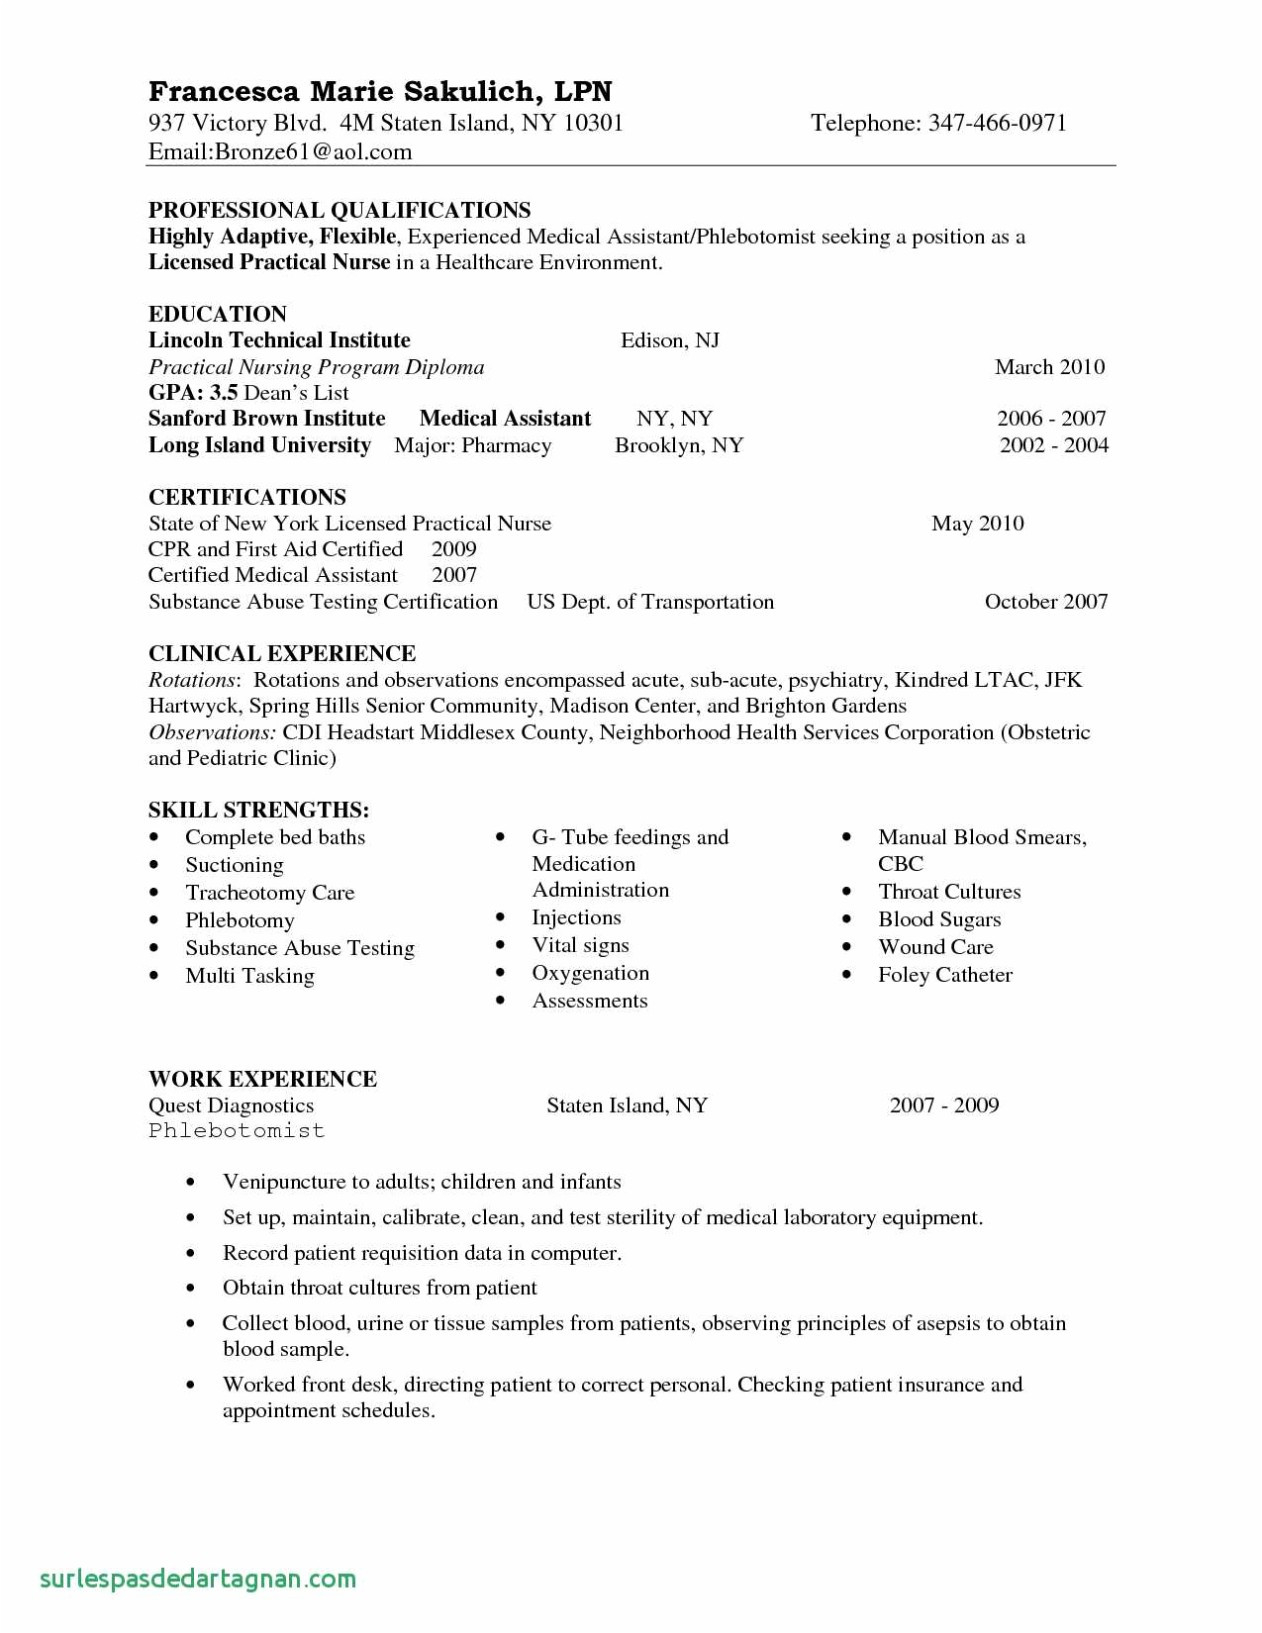 Home Care Nursing Resume - Awesome New Grad Nursing Resume Template